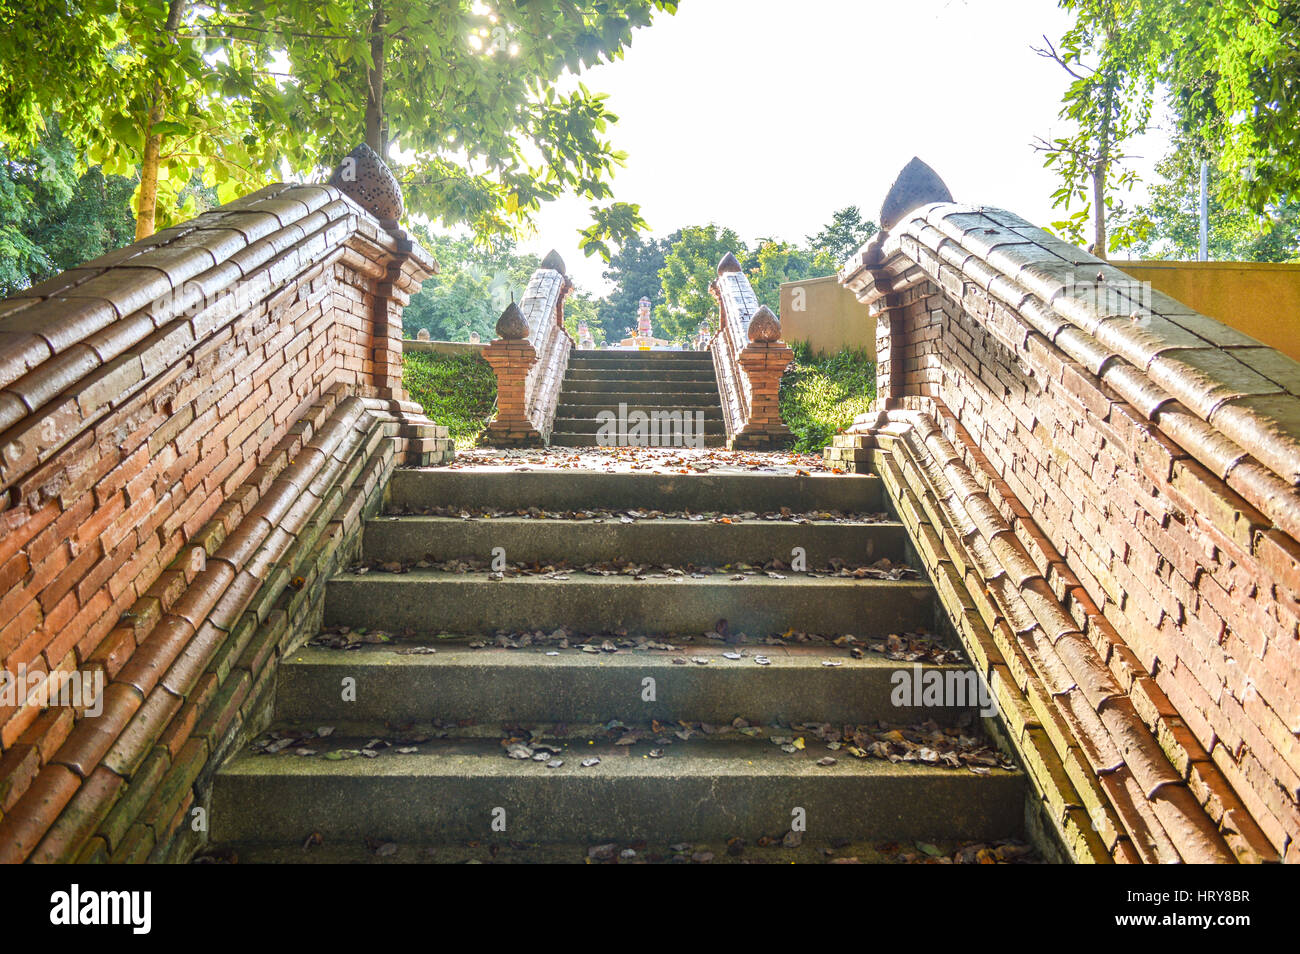 Chiang Rai, Thailand - October 1, 2016: Wat Phra That Doi Chom Thong. Stairway to Omphalos of the city - Stock Image